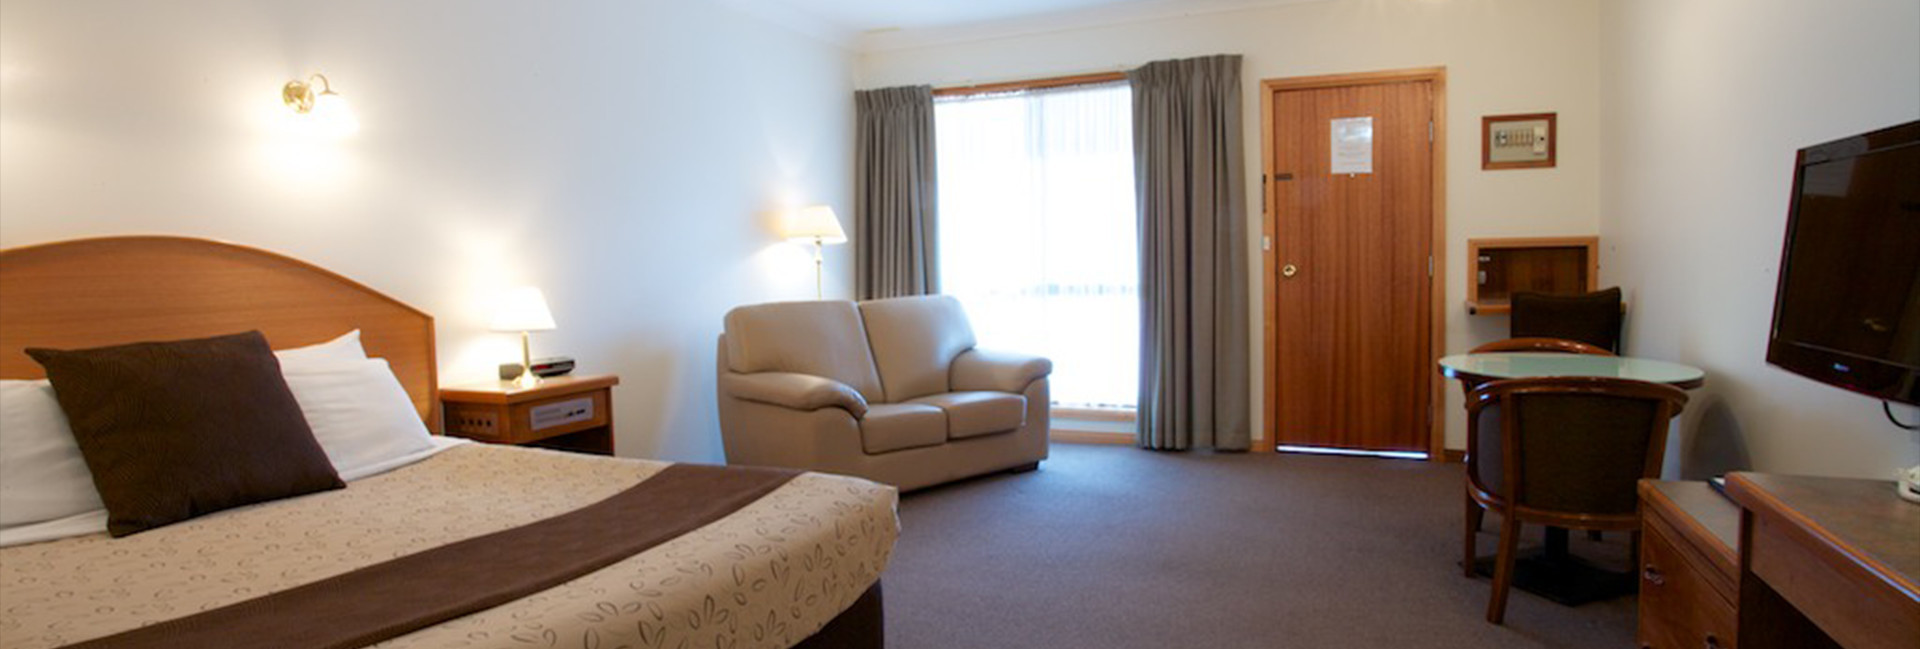 Variety of different options perfect for your next stay in Horsham